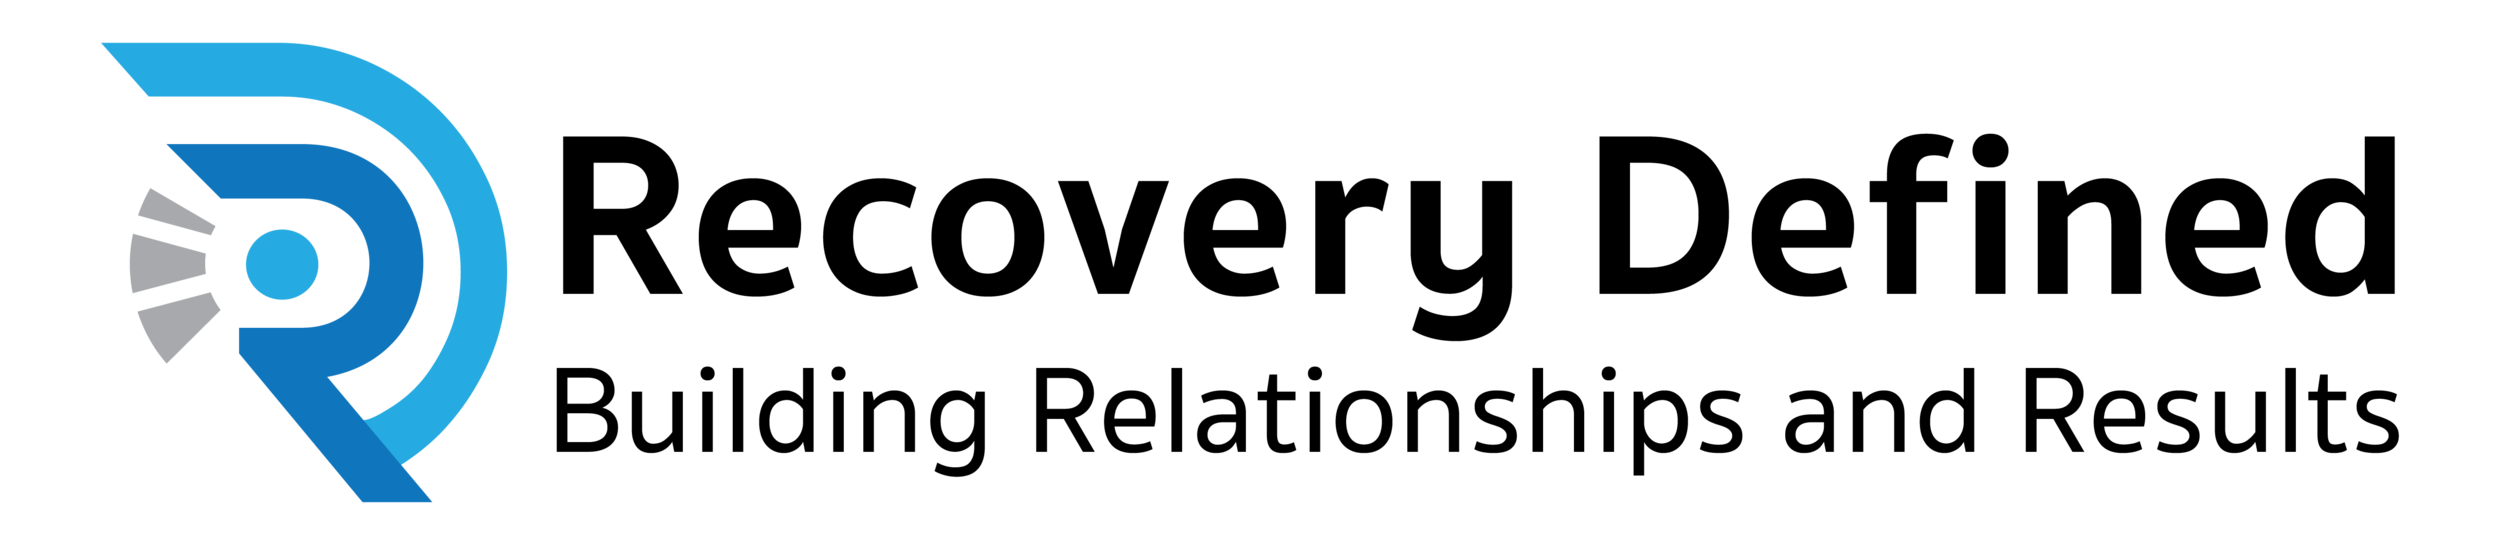 RecoveryDefined_TextLogo_Black.png